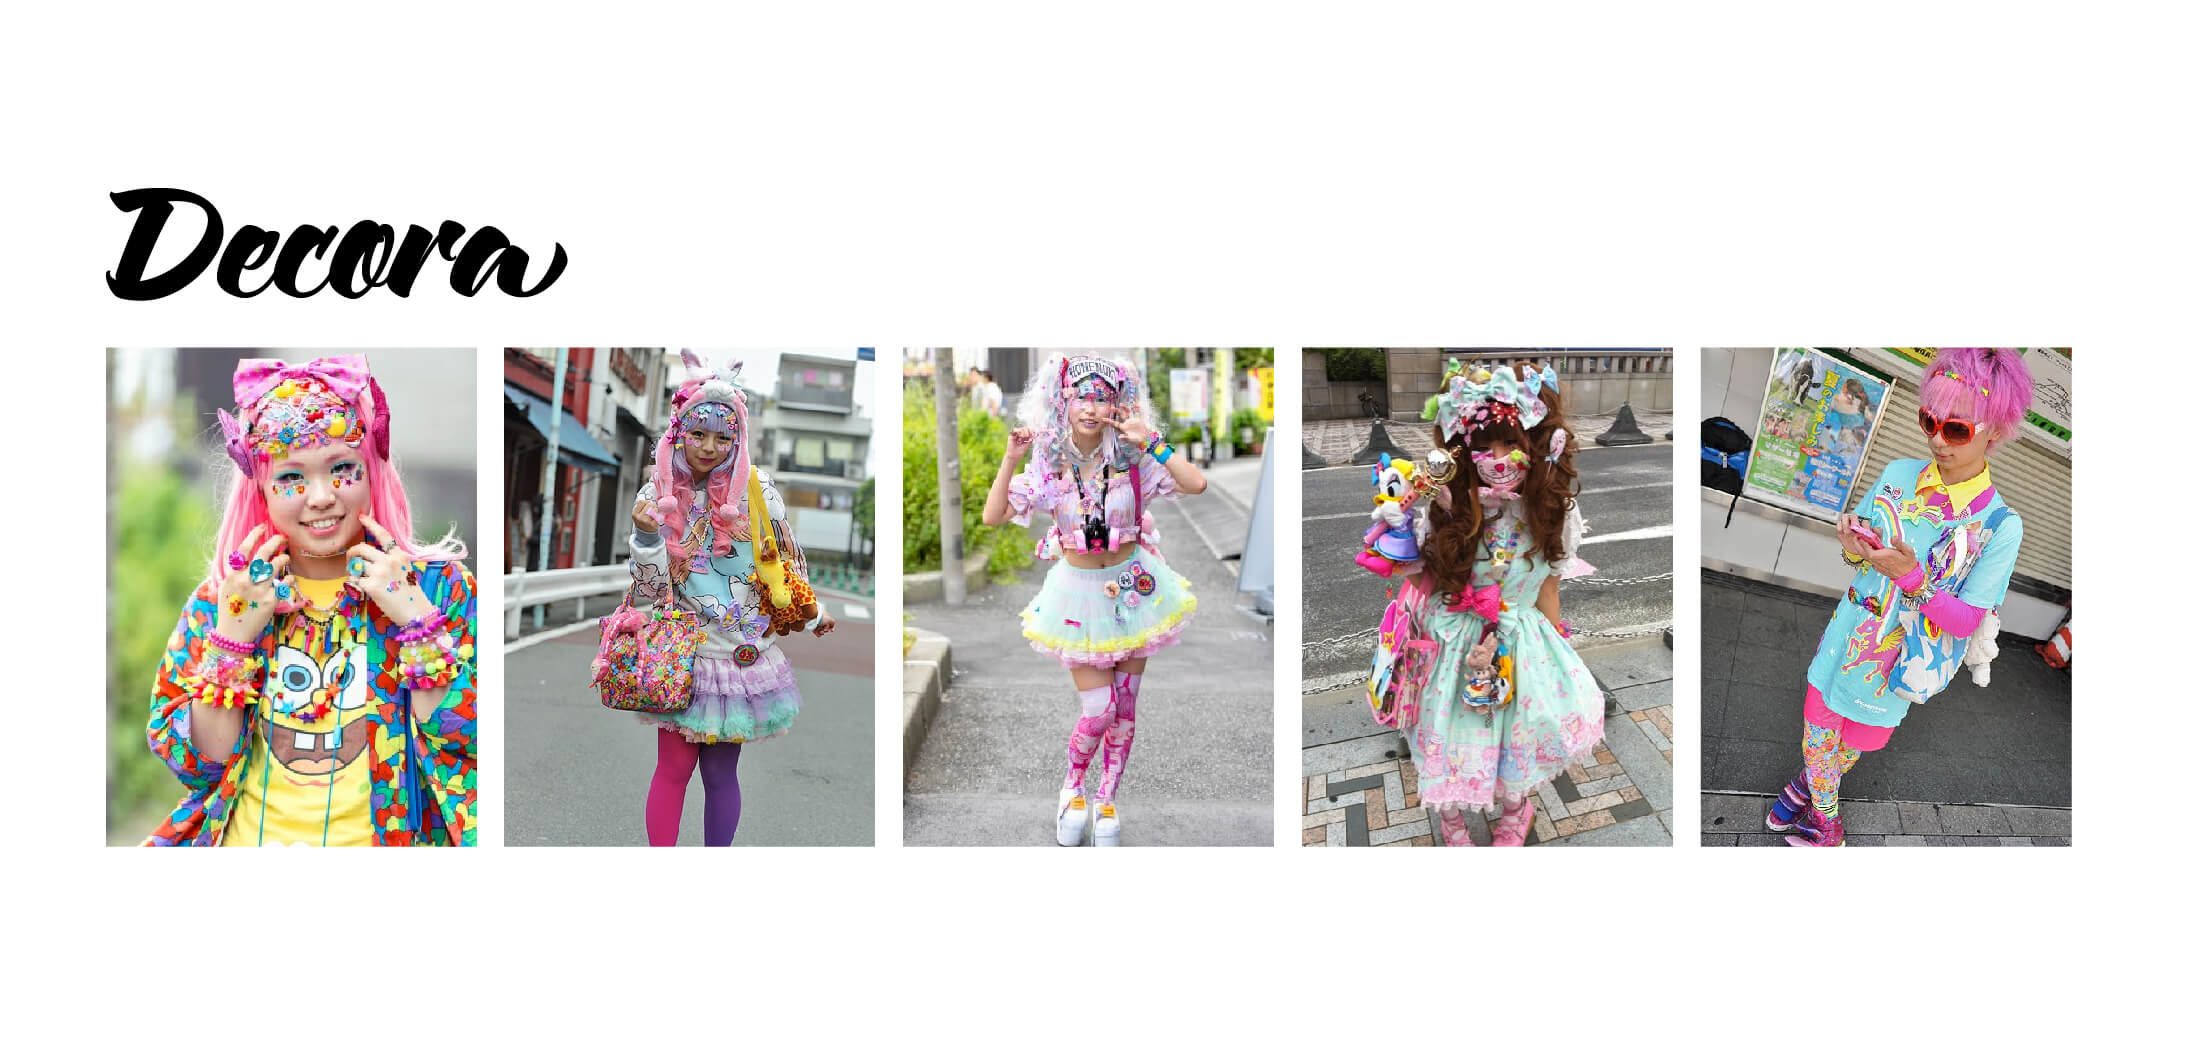 Examples of Decora Fashion